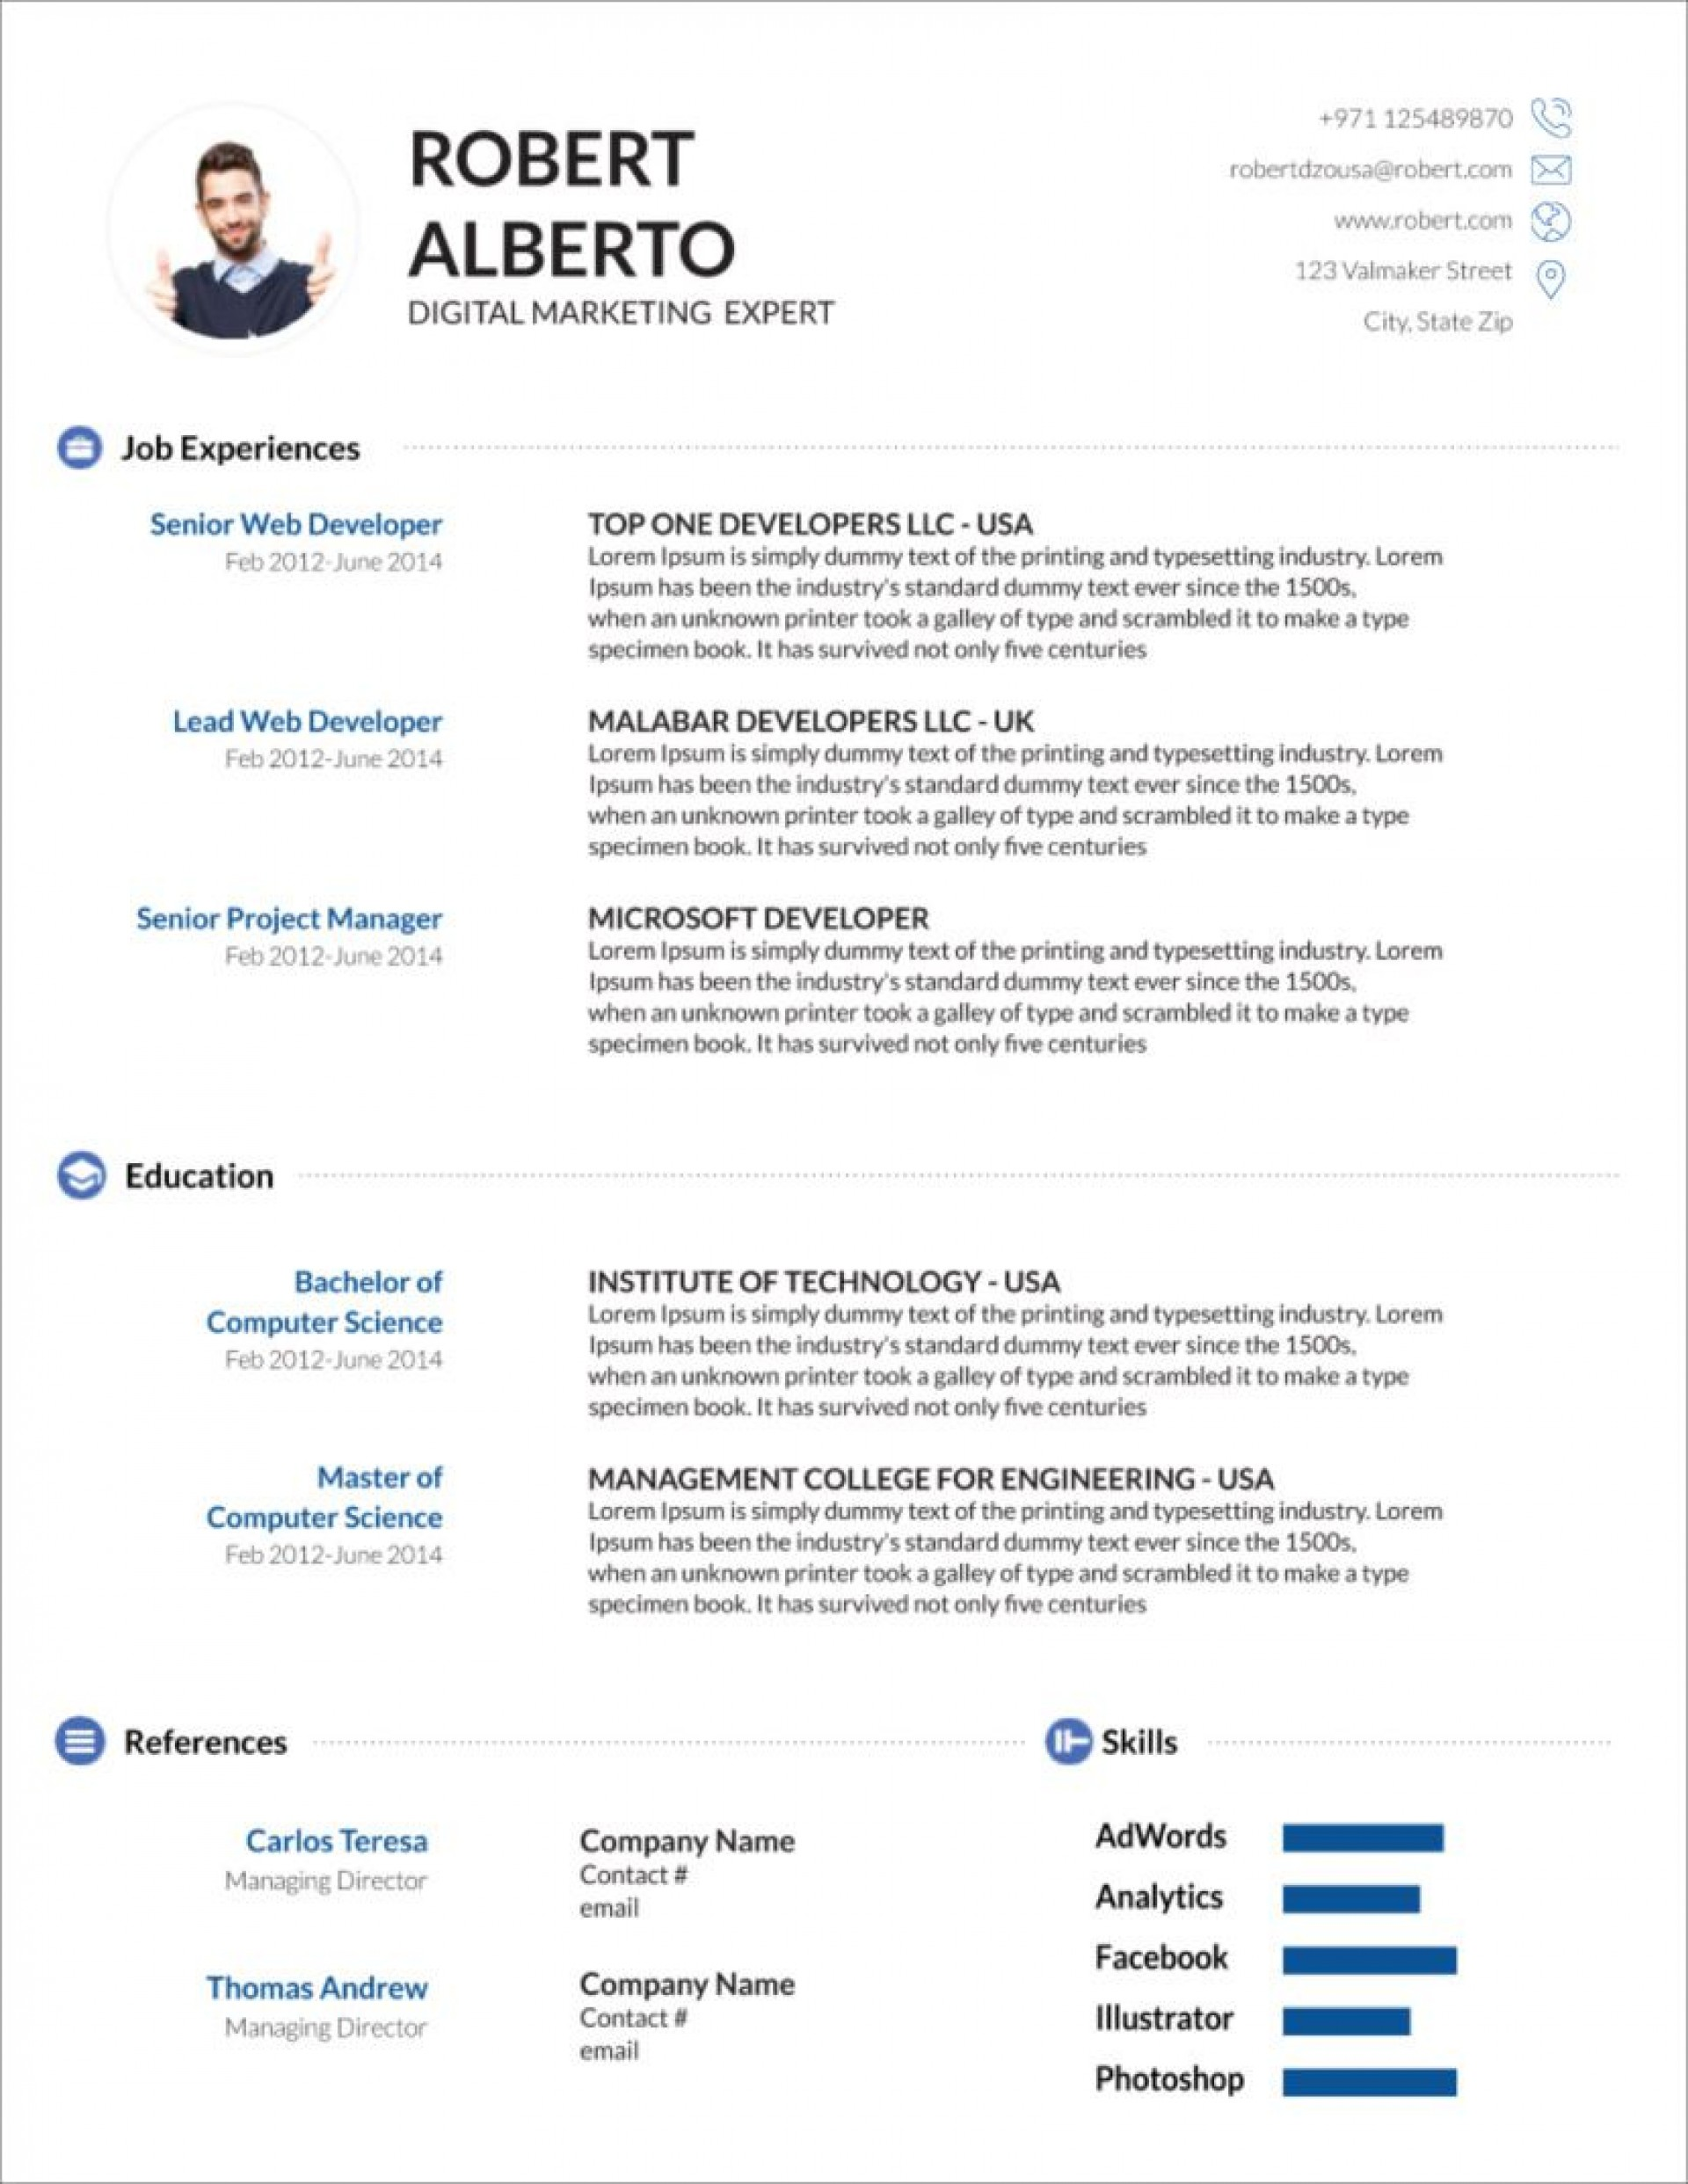 008 Fascinating Resume Layout Microsoft Word 2007 Picture  Template Cv Free Download1920